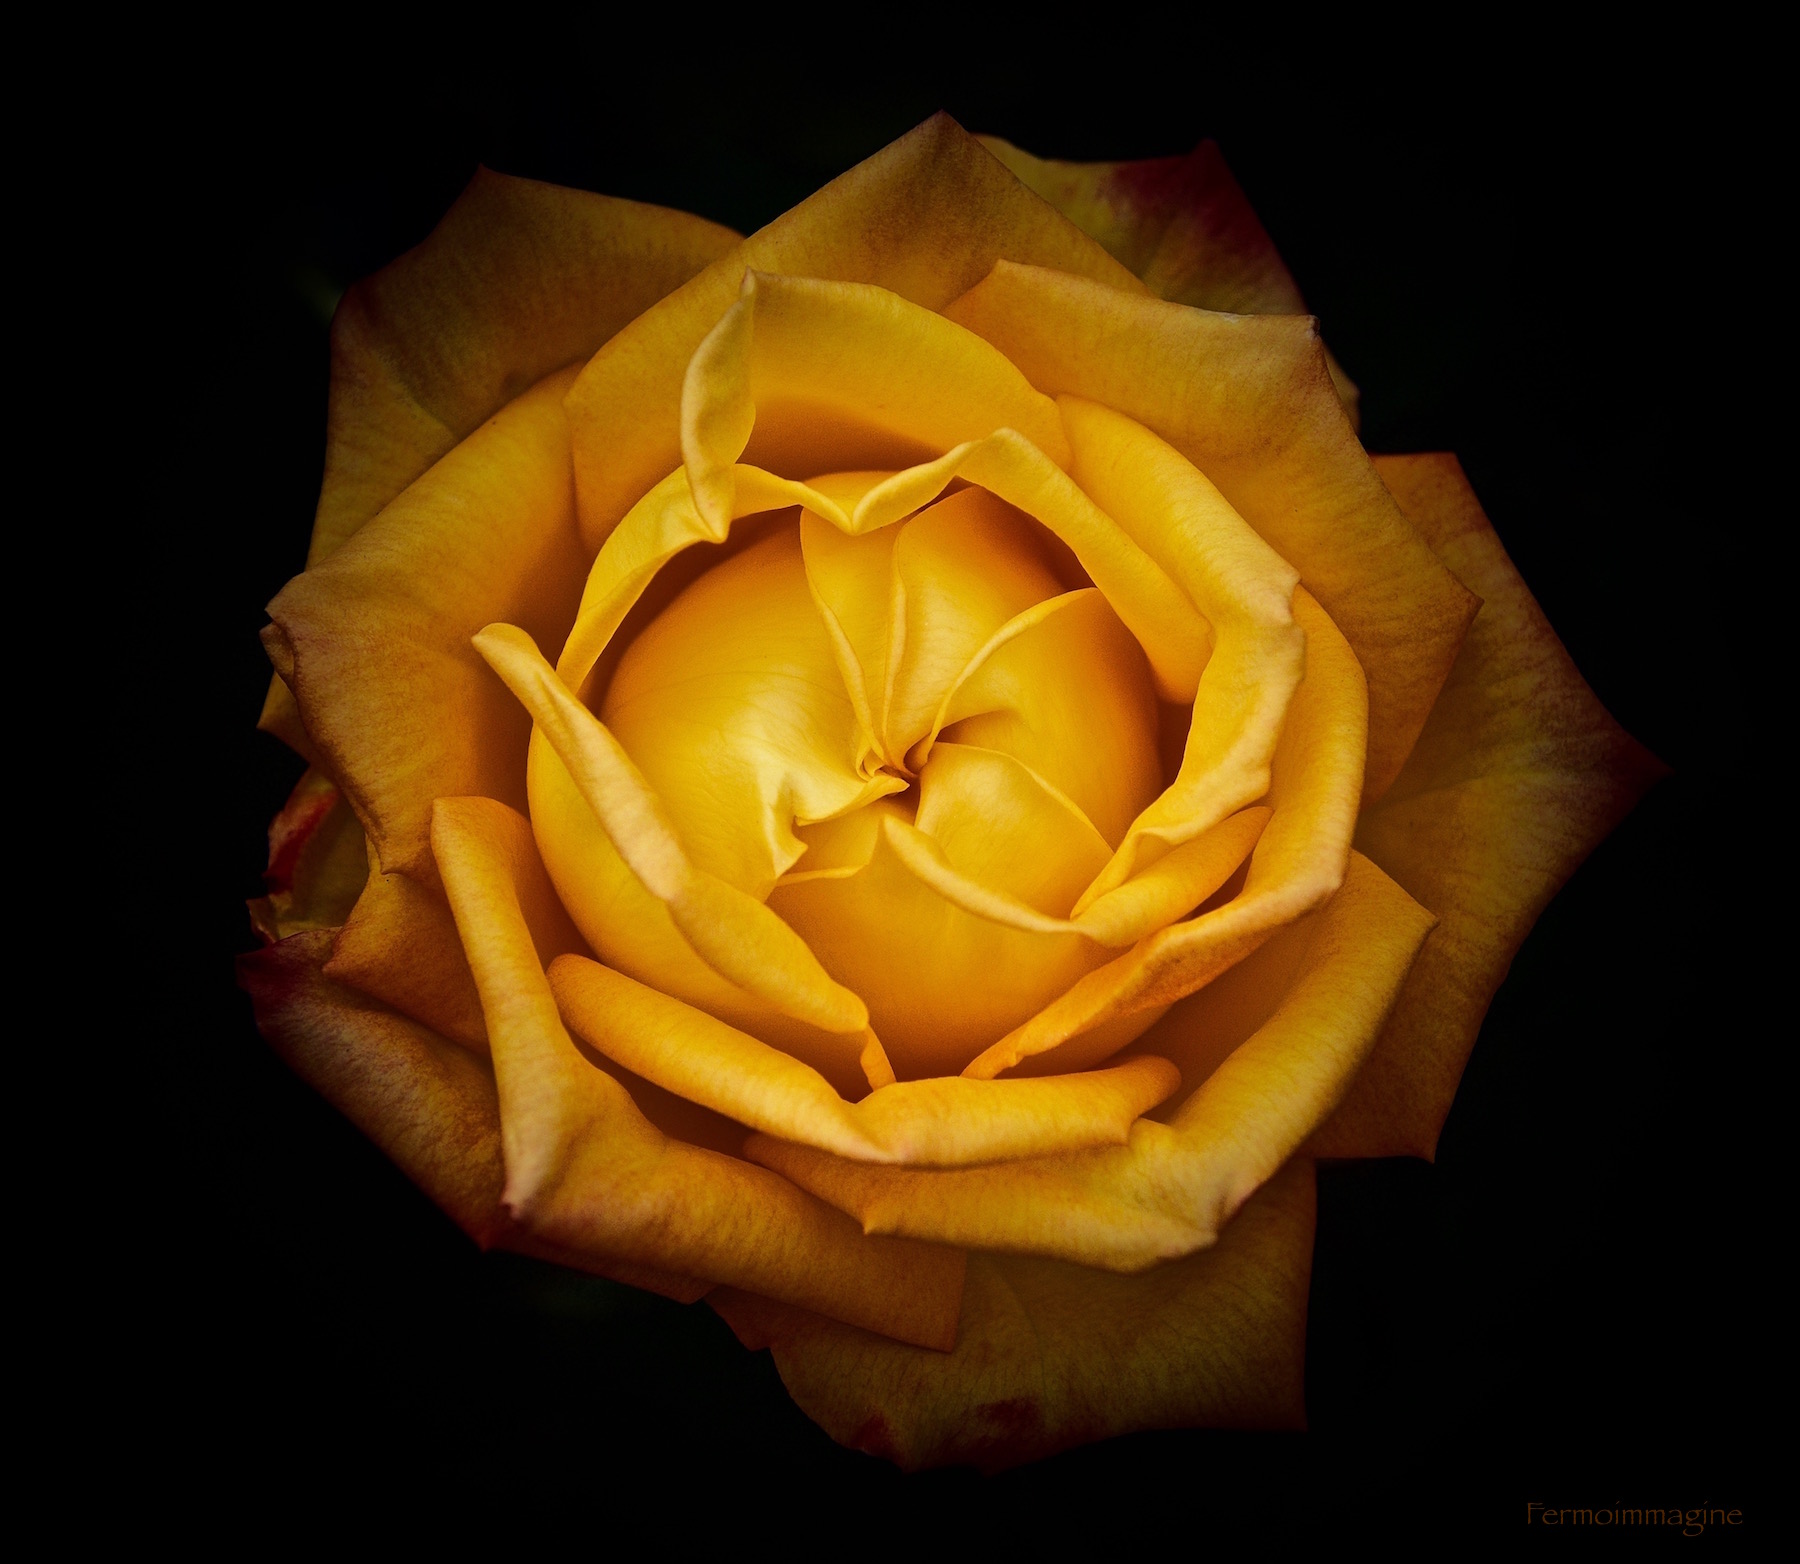 A rose in the evening never gets black ......